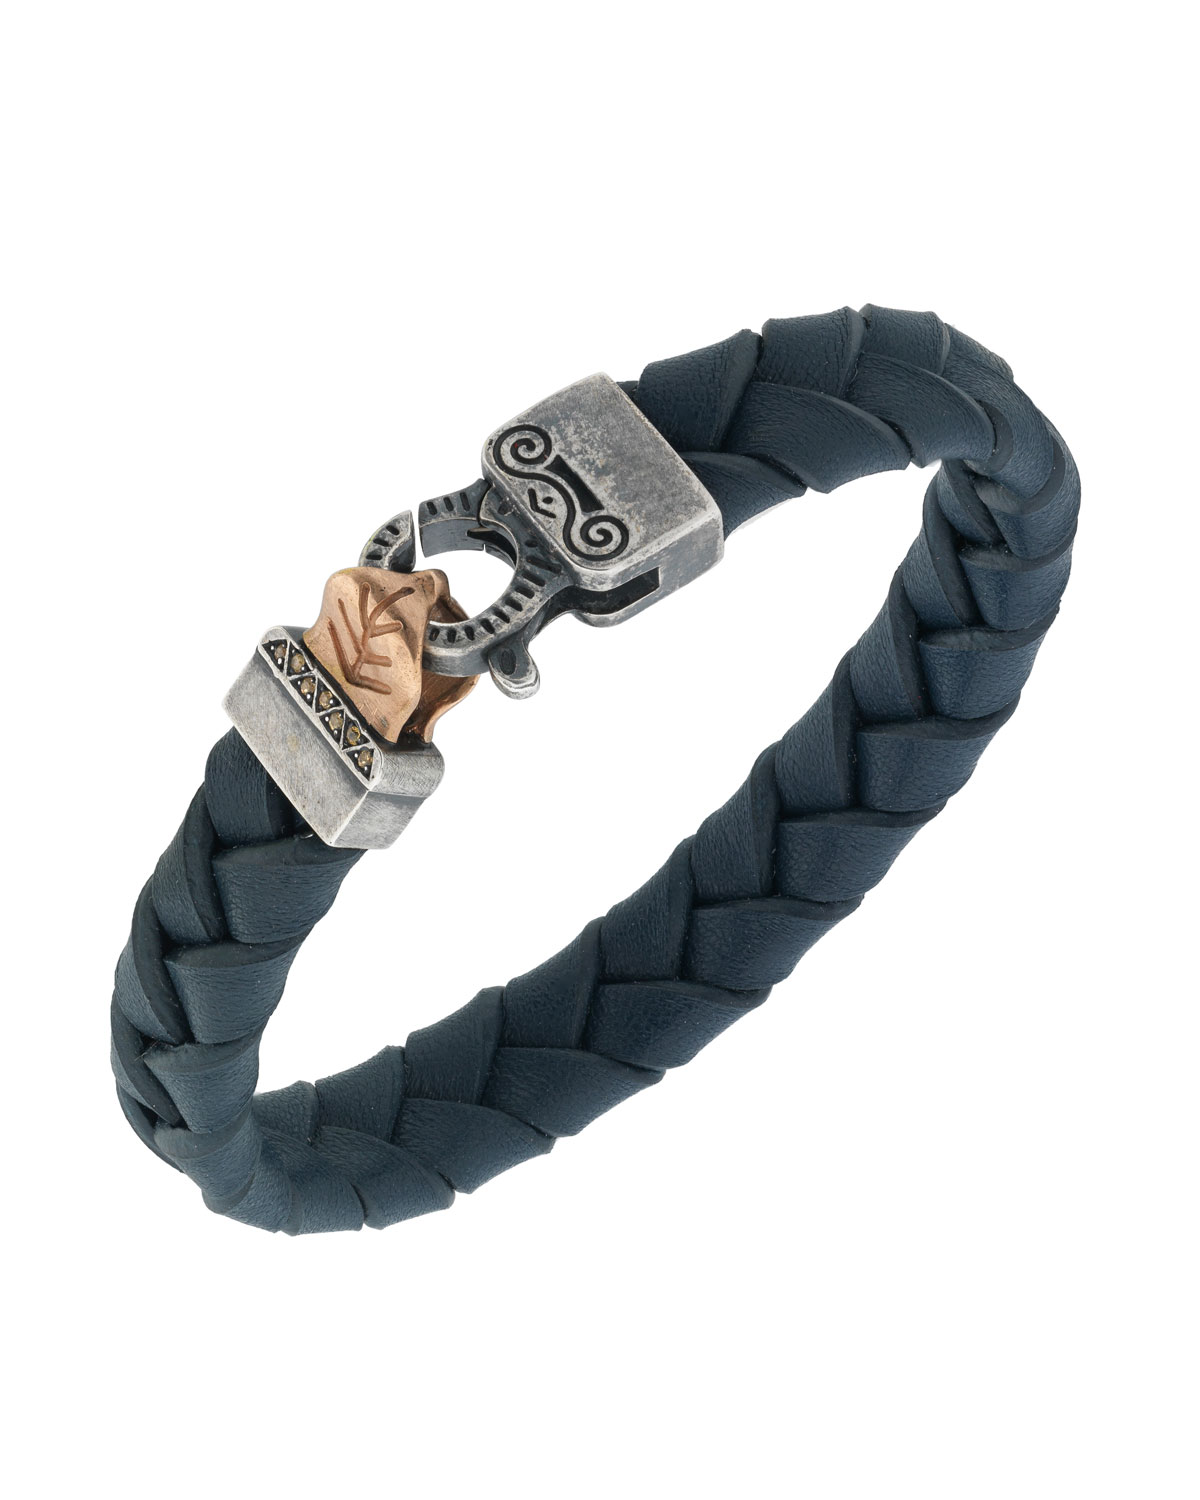 MARCO DAL MASO MEN'S WOVEN LEATHER BRACELET W/ ROSE GOLD-PLATED CLASP, BLUE